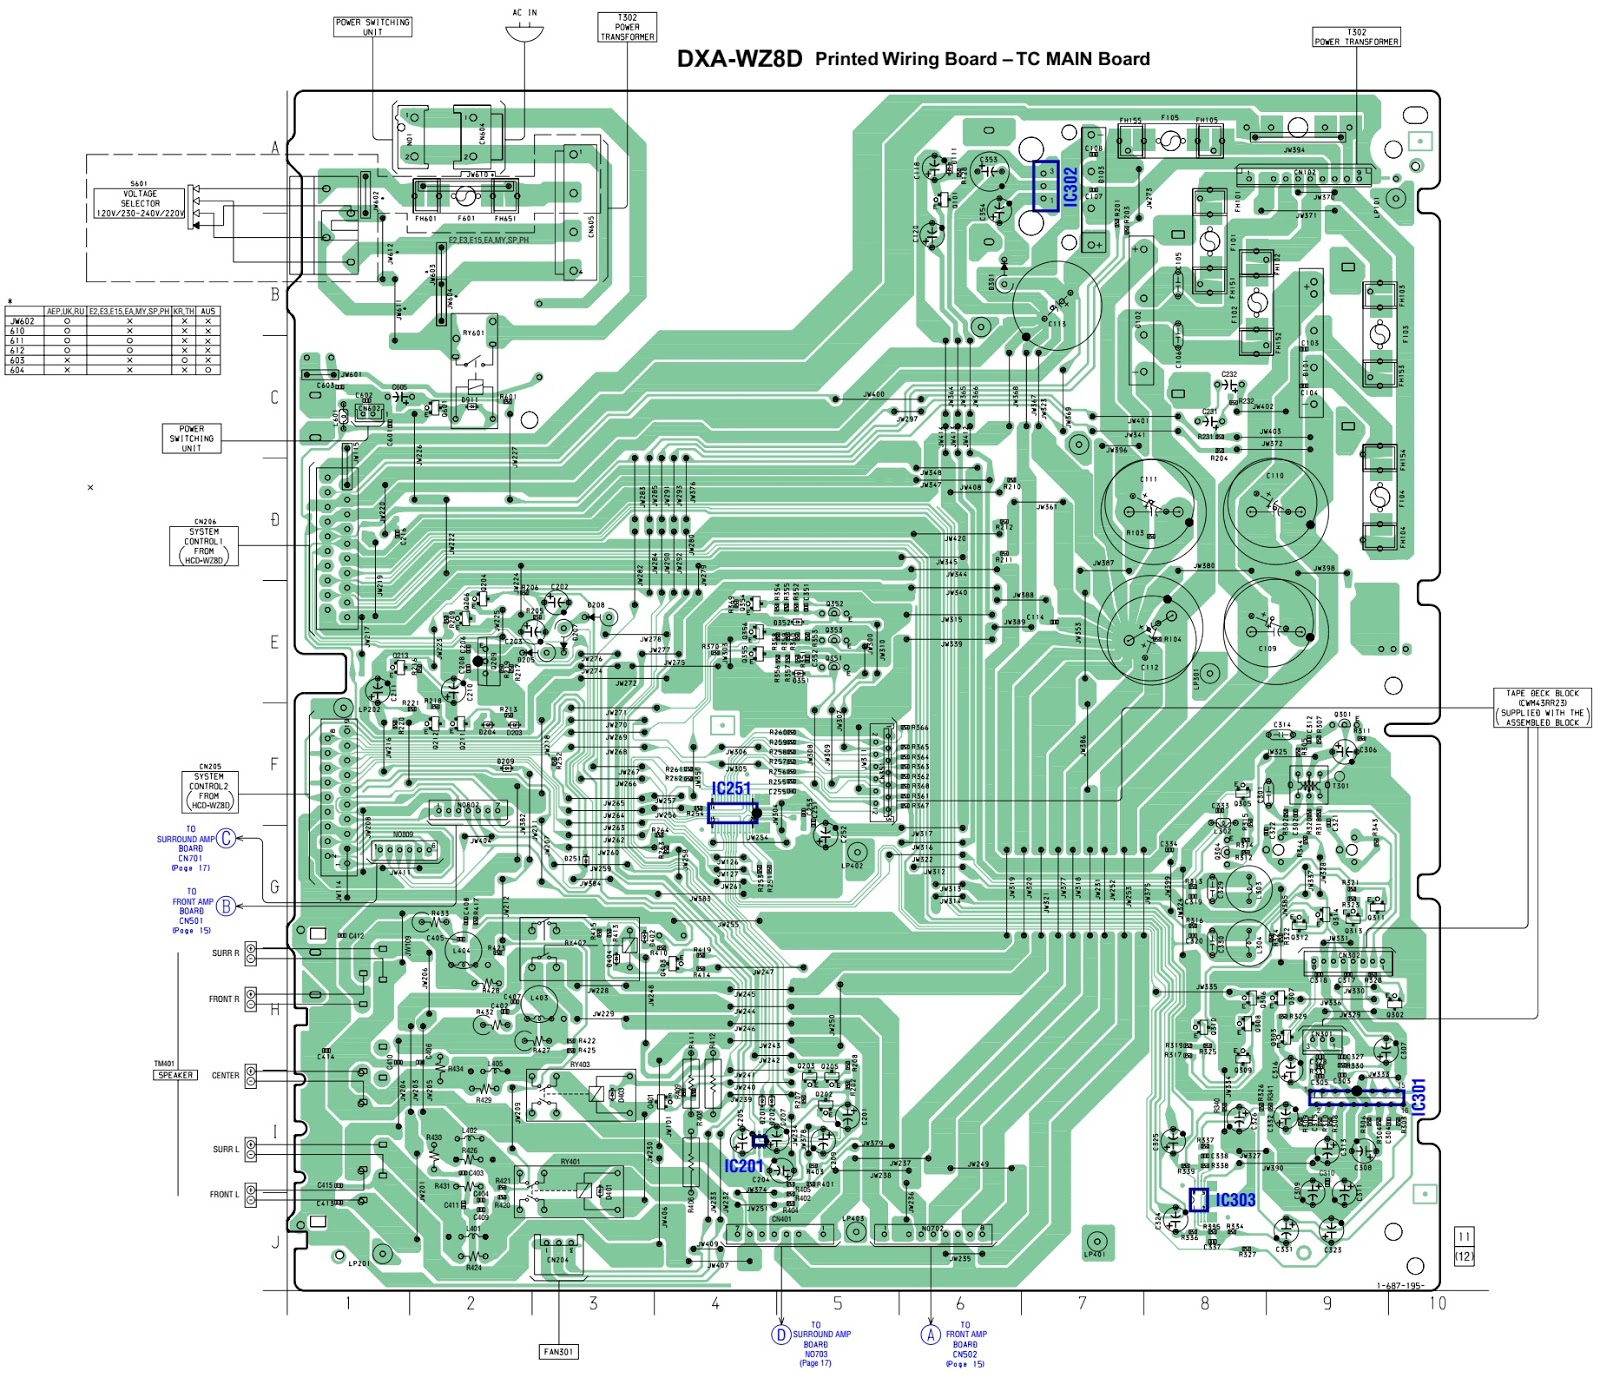 hight resolution of sony dxa wz8d main board circuit diagram 1of 2